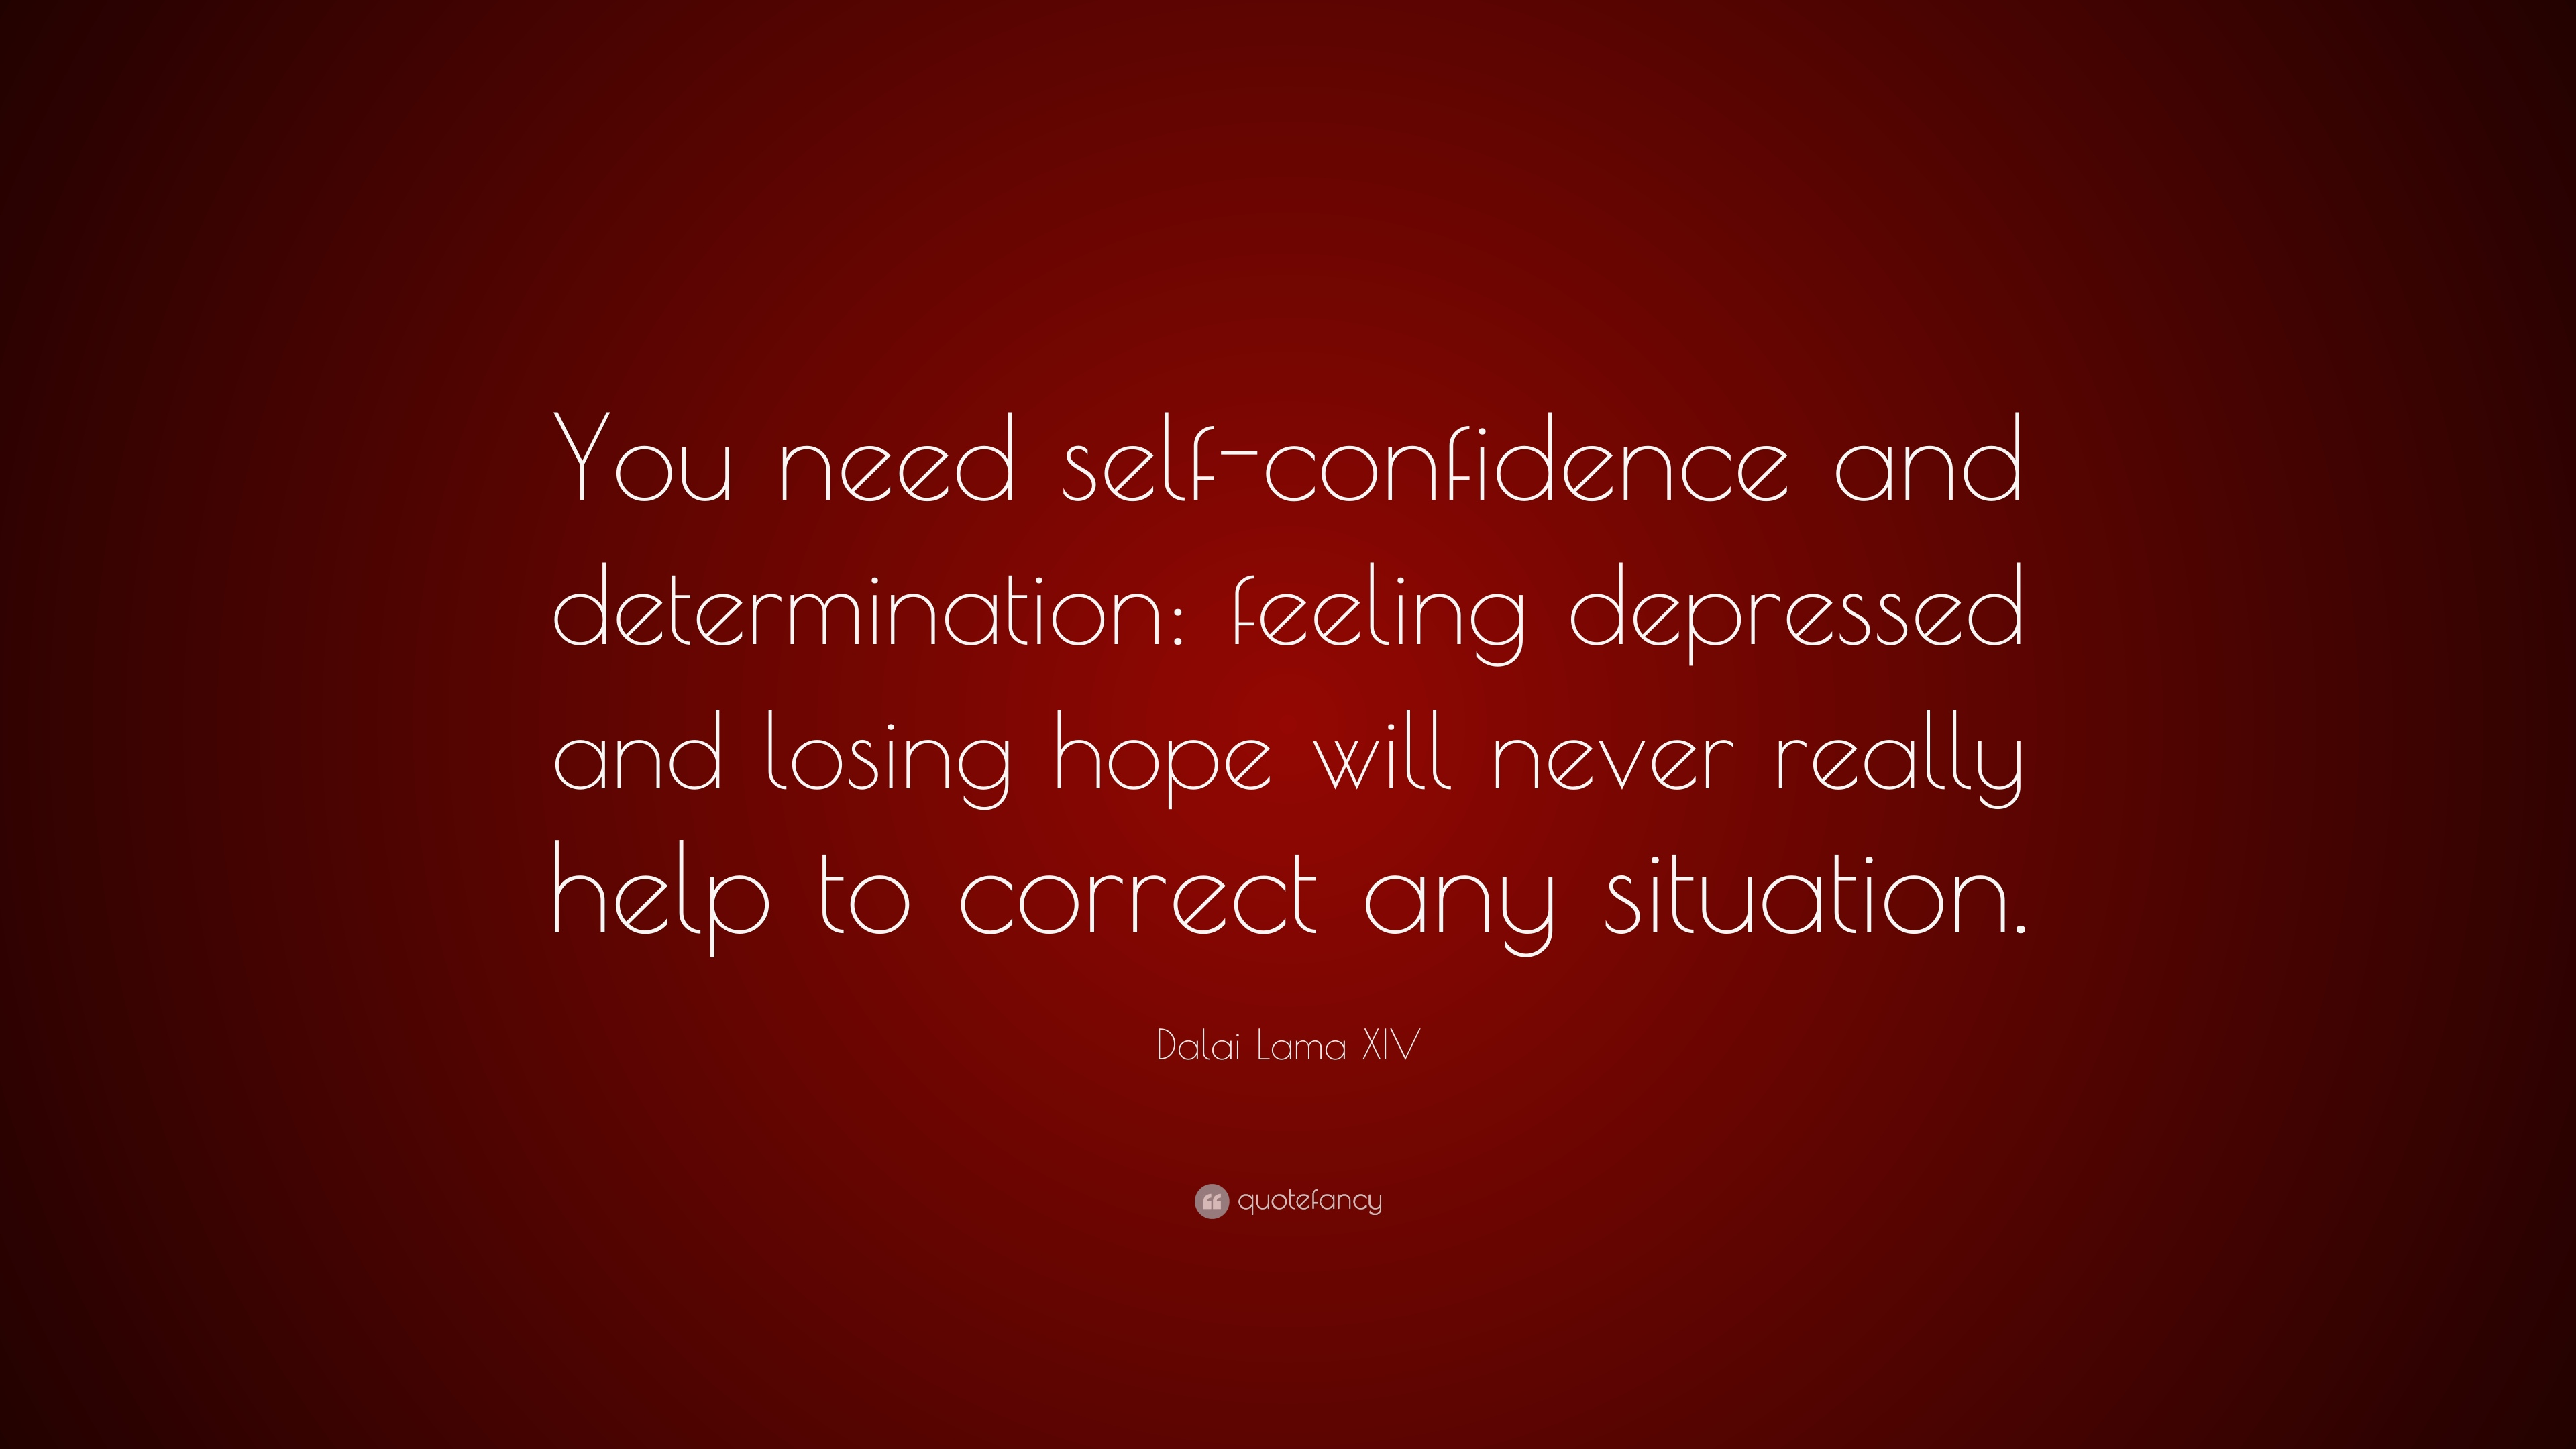 Dalai Lama Xiv Quote You Need Self Confidence And Determination